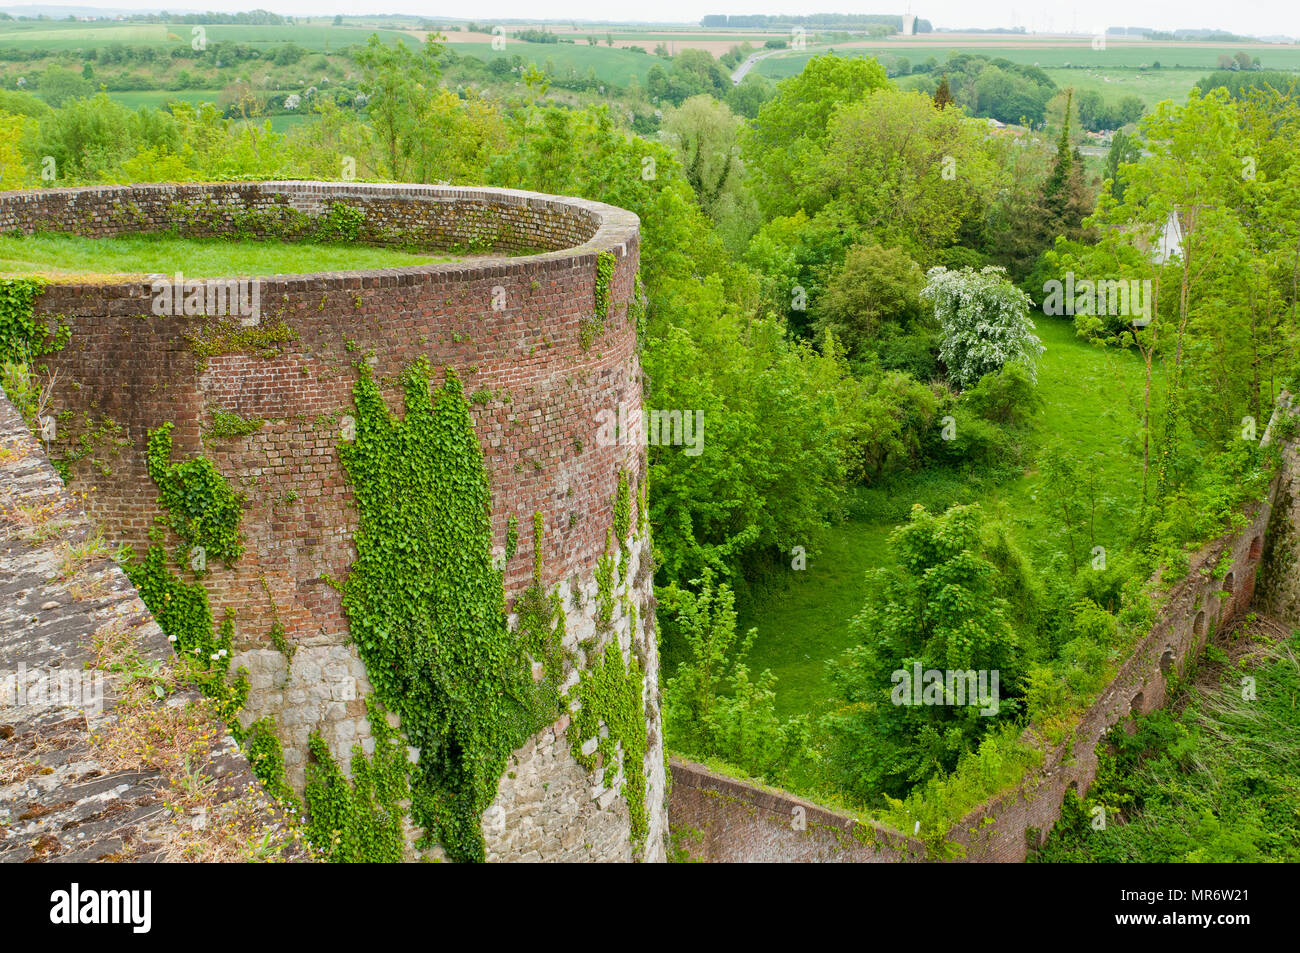 The Vauban fortifications at Montreuil, Northern France - Stock Image